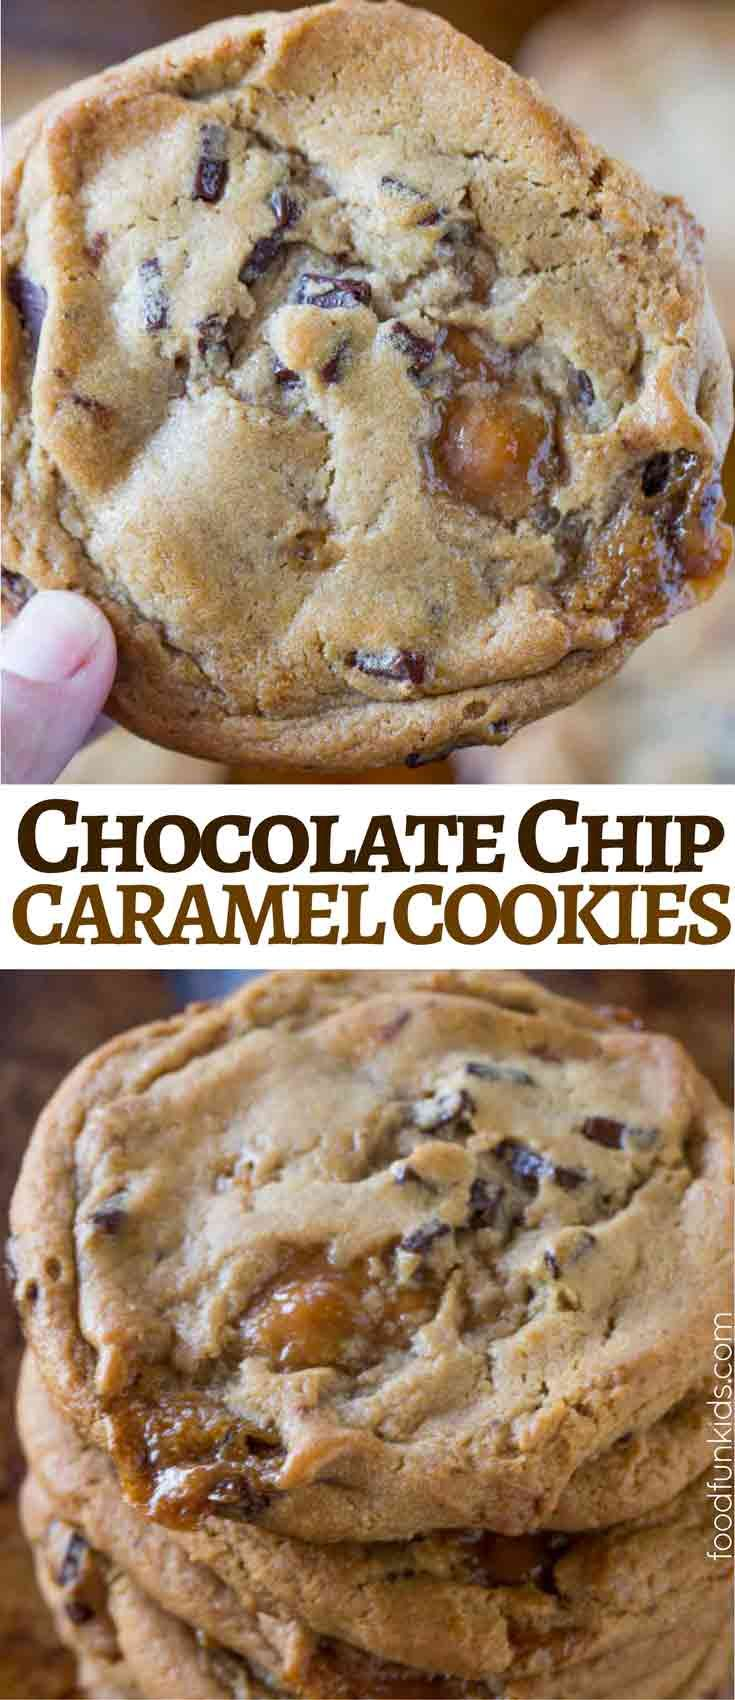 Caramel Chocolate Chip Cookies